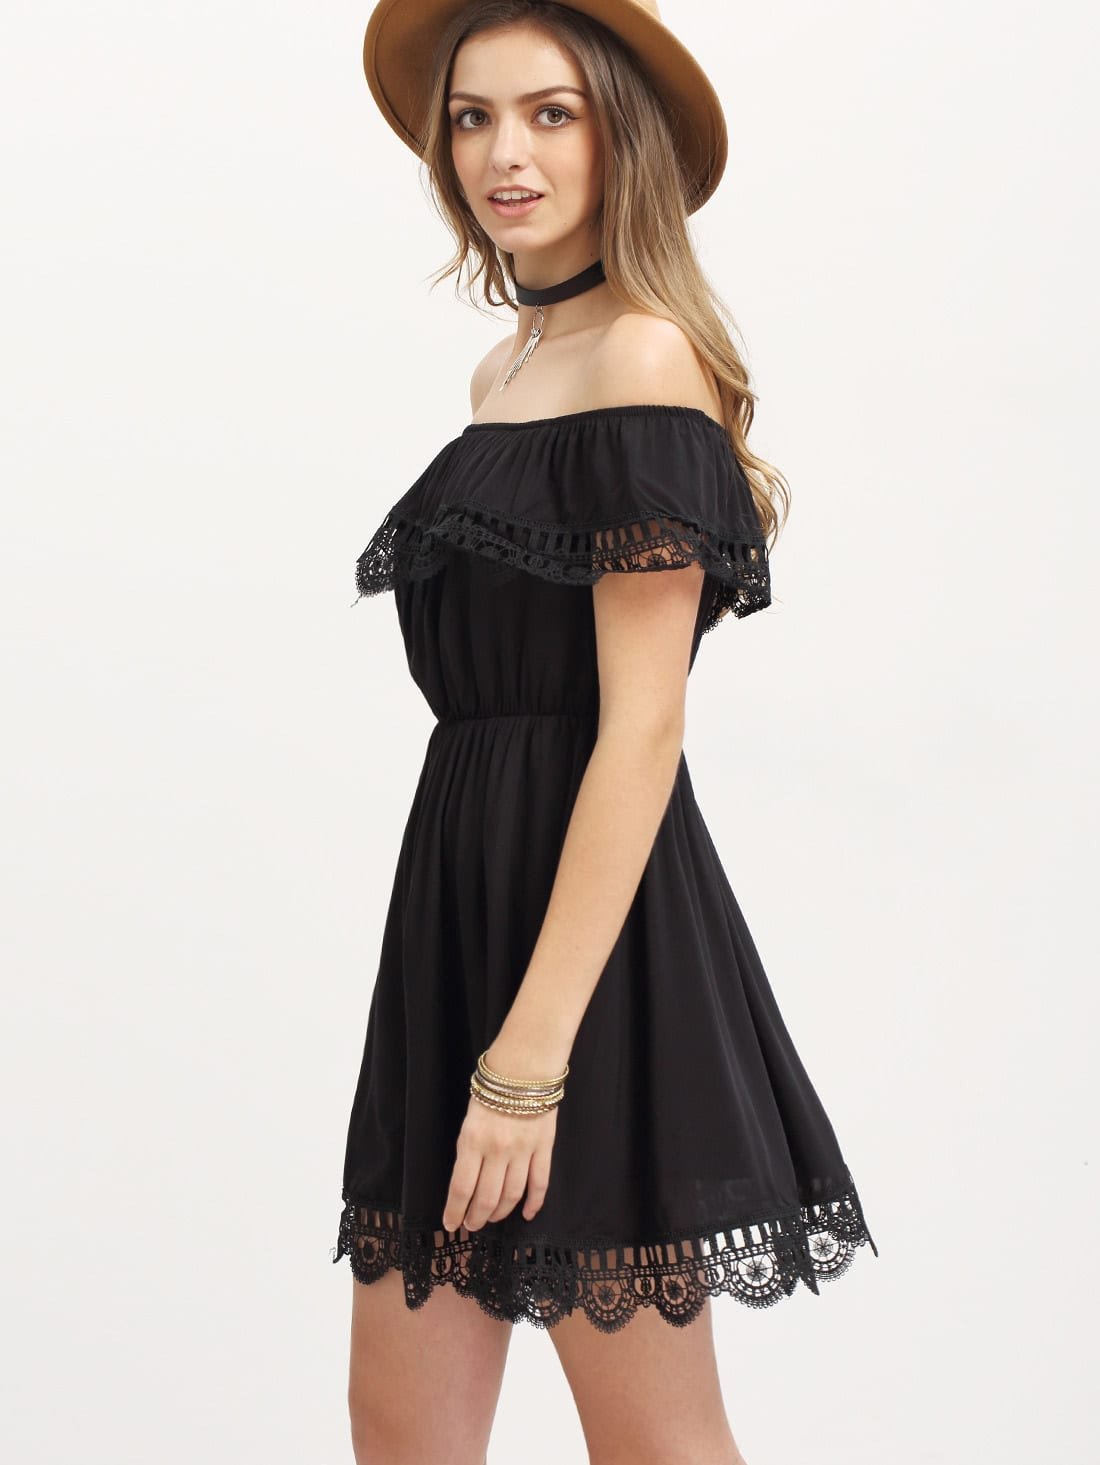 Looking for hot, off-the-shoulder looks? Lulu's has the cutest selection of off-the-shoulder and cold-shoulder tops, dresses, and rompers! Formal Dresses Lace Dresses Long Sleeve Dresses Strapless Dresses Vacation Dresses Maxi Dresses Short Dresses Midi Dresses Casual Dresses Skater Dresses Shift Dresses Print and Sign up for.